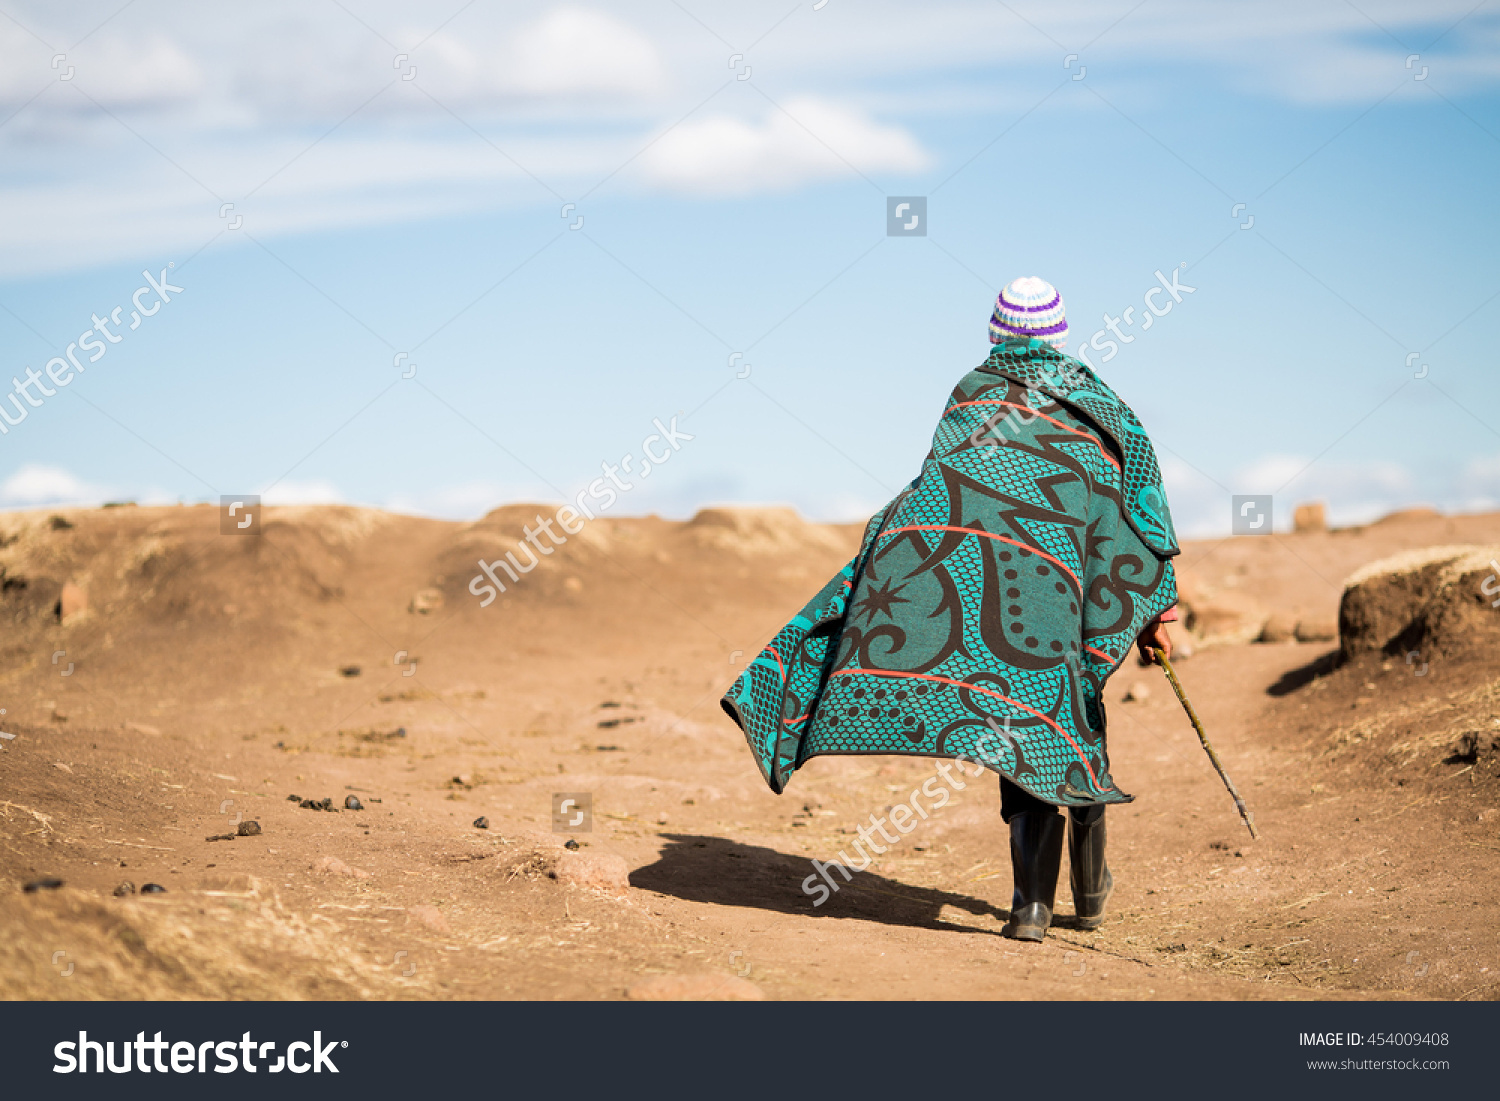 Unidentified Basotho Man Wearing Traditional Blanket Stock Photo.